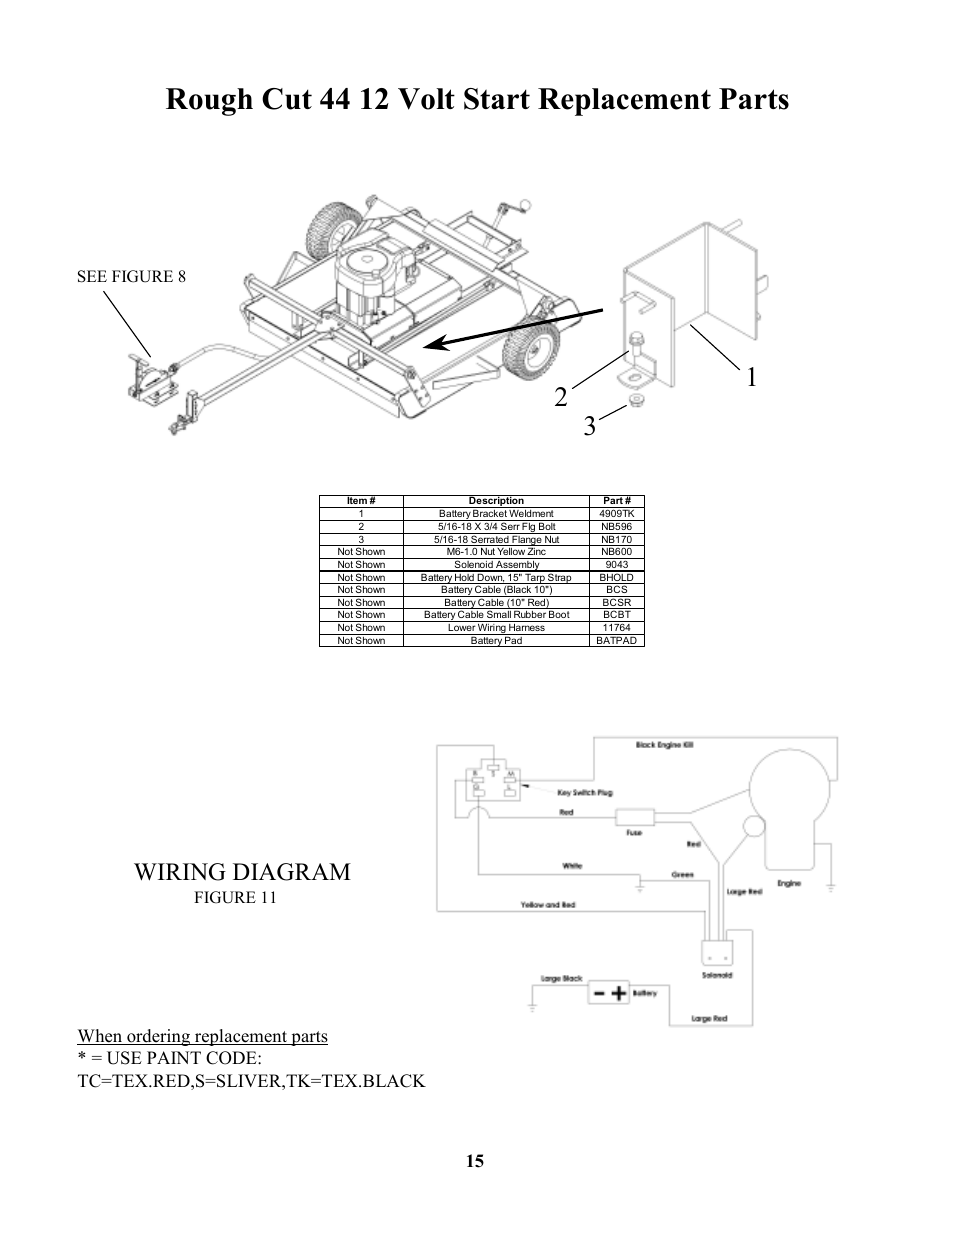 Swisher Wiring Harness Diagram For Light Switch Toro Rough Cut 44 12 Volt Start Replacement Parts See Rh Manualsdir Com Exmark Bobcat